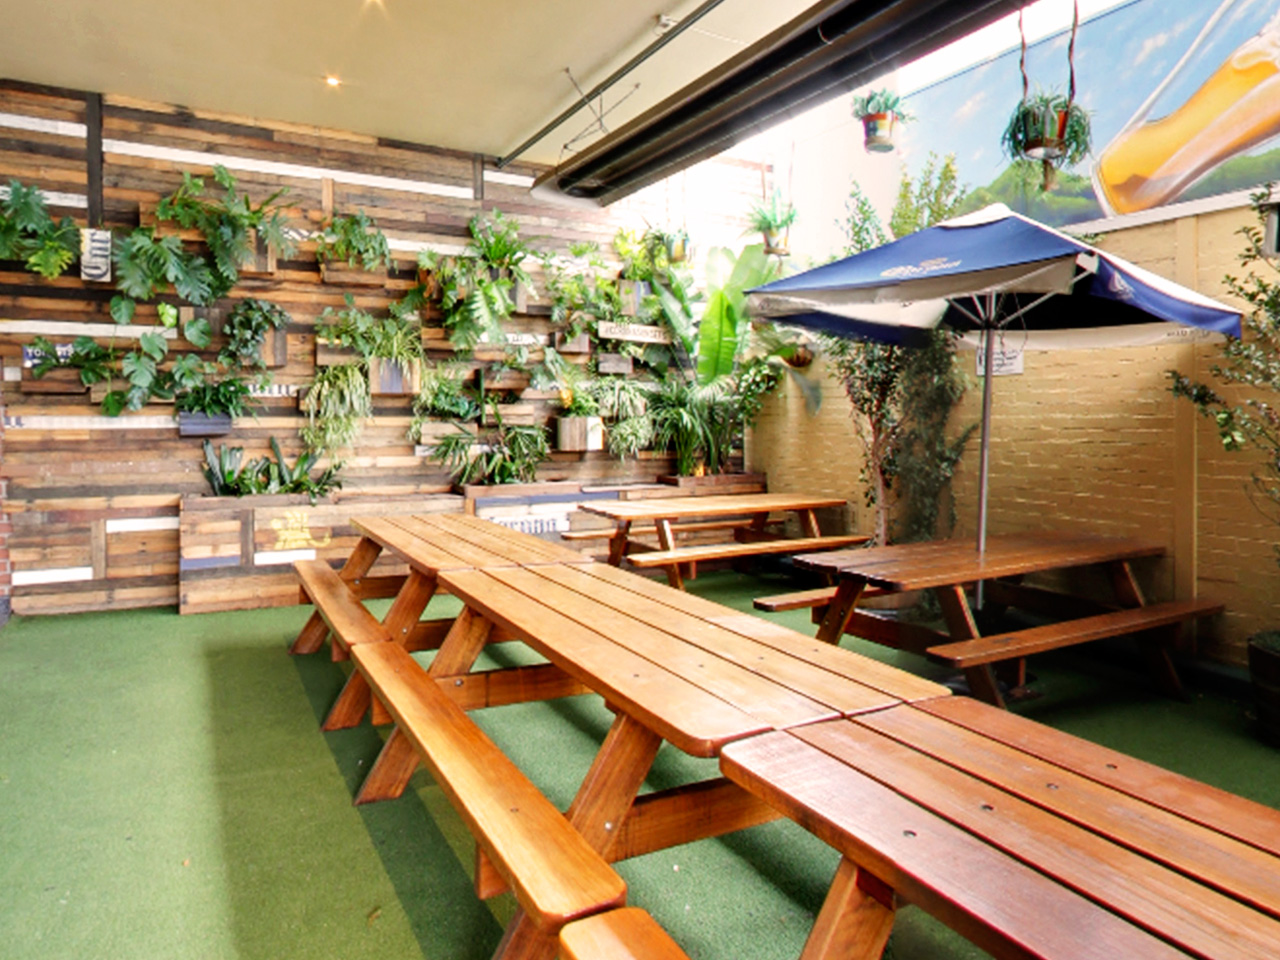 Wooden Tables And Chairs With Umbrellas And Wall With Hanging Plants In The Outdoor Function Venue